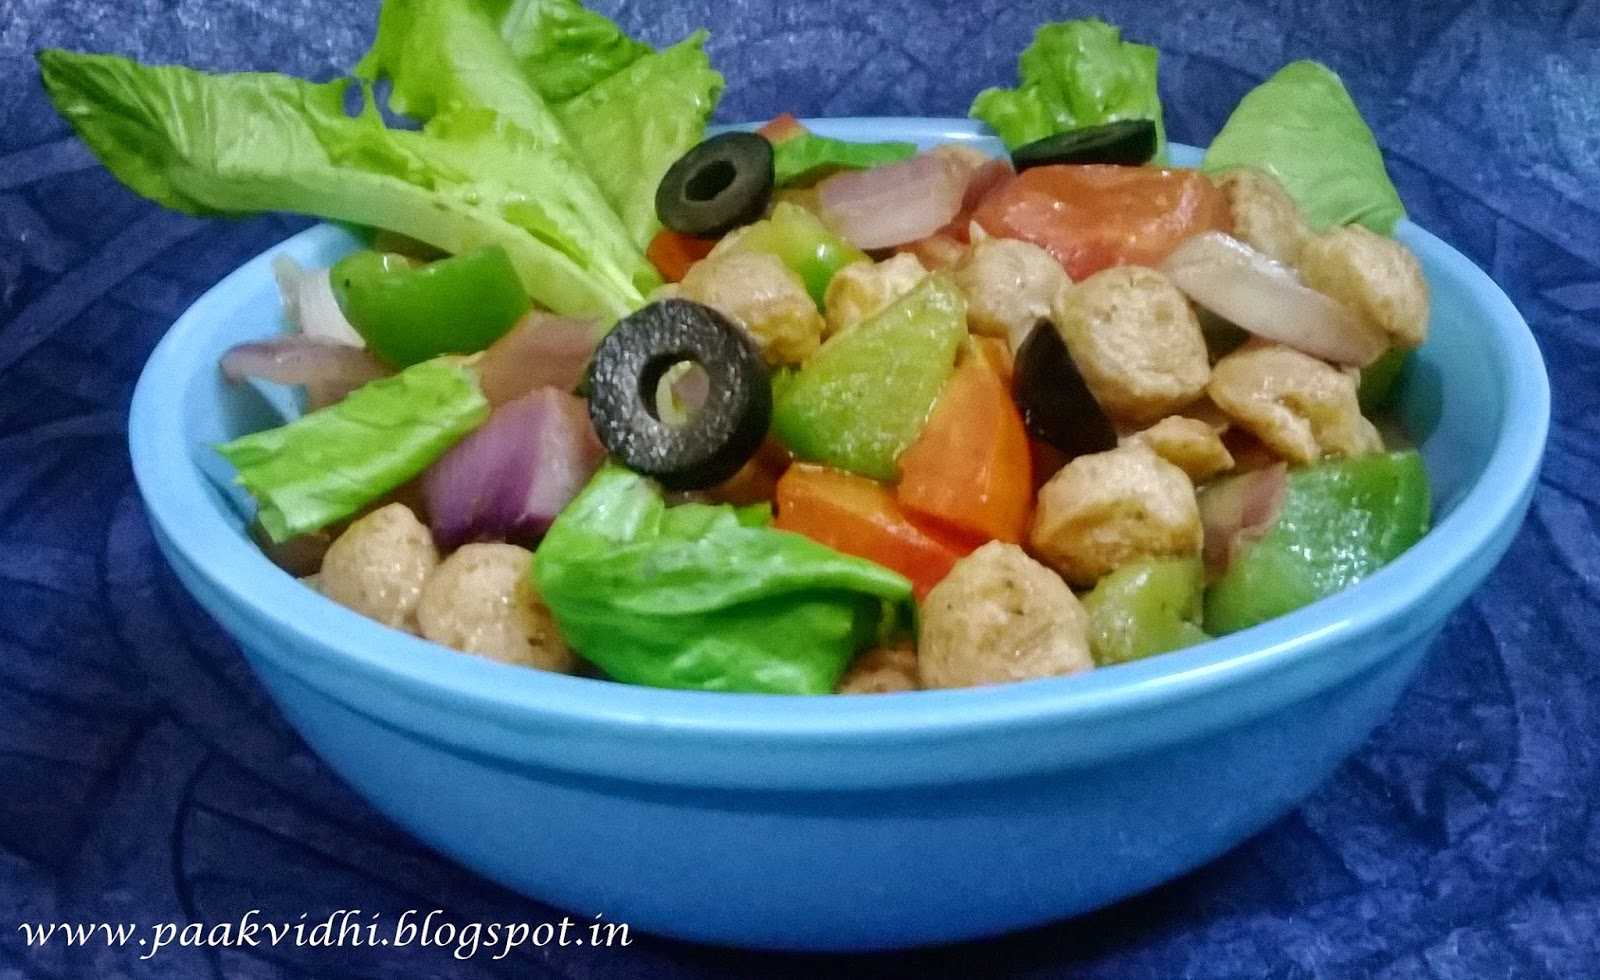 http://paakvidhi.blogspot.in/2014/04/soya-nugget-stir-fried-salad.html